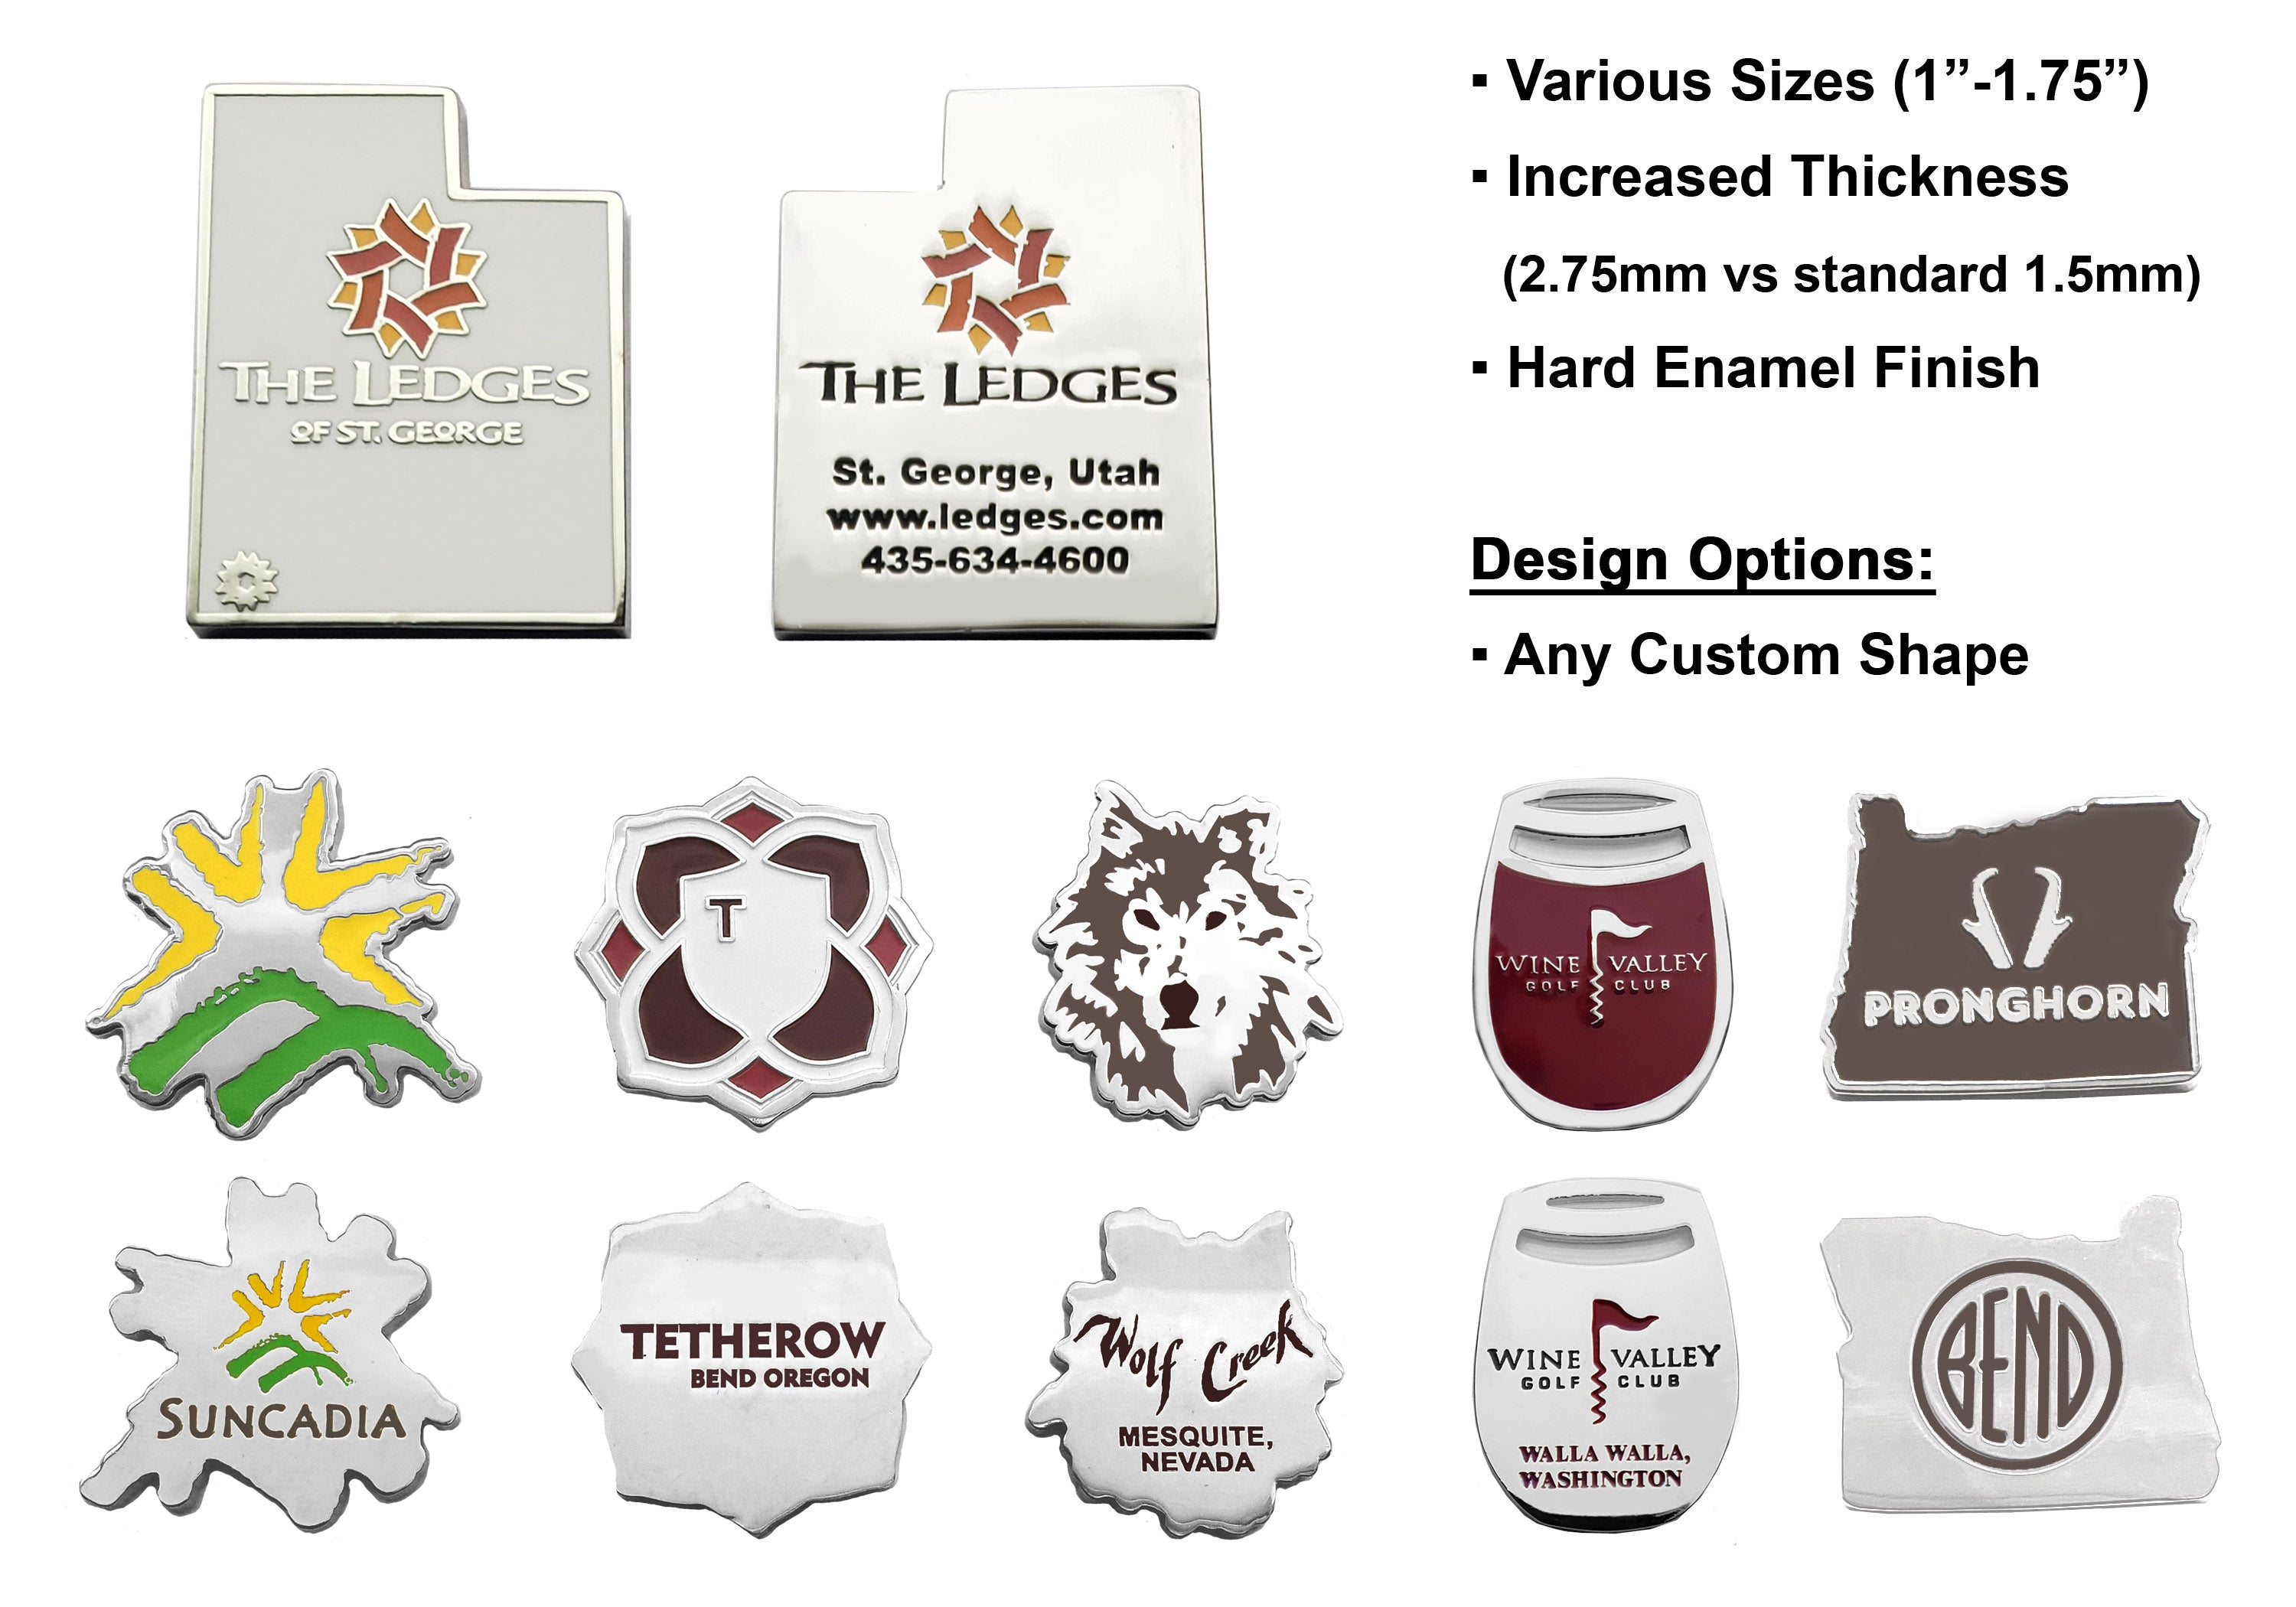 Custom Shaped Premium Ballmarkers